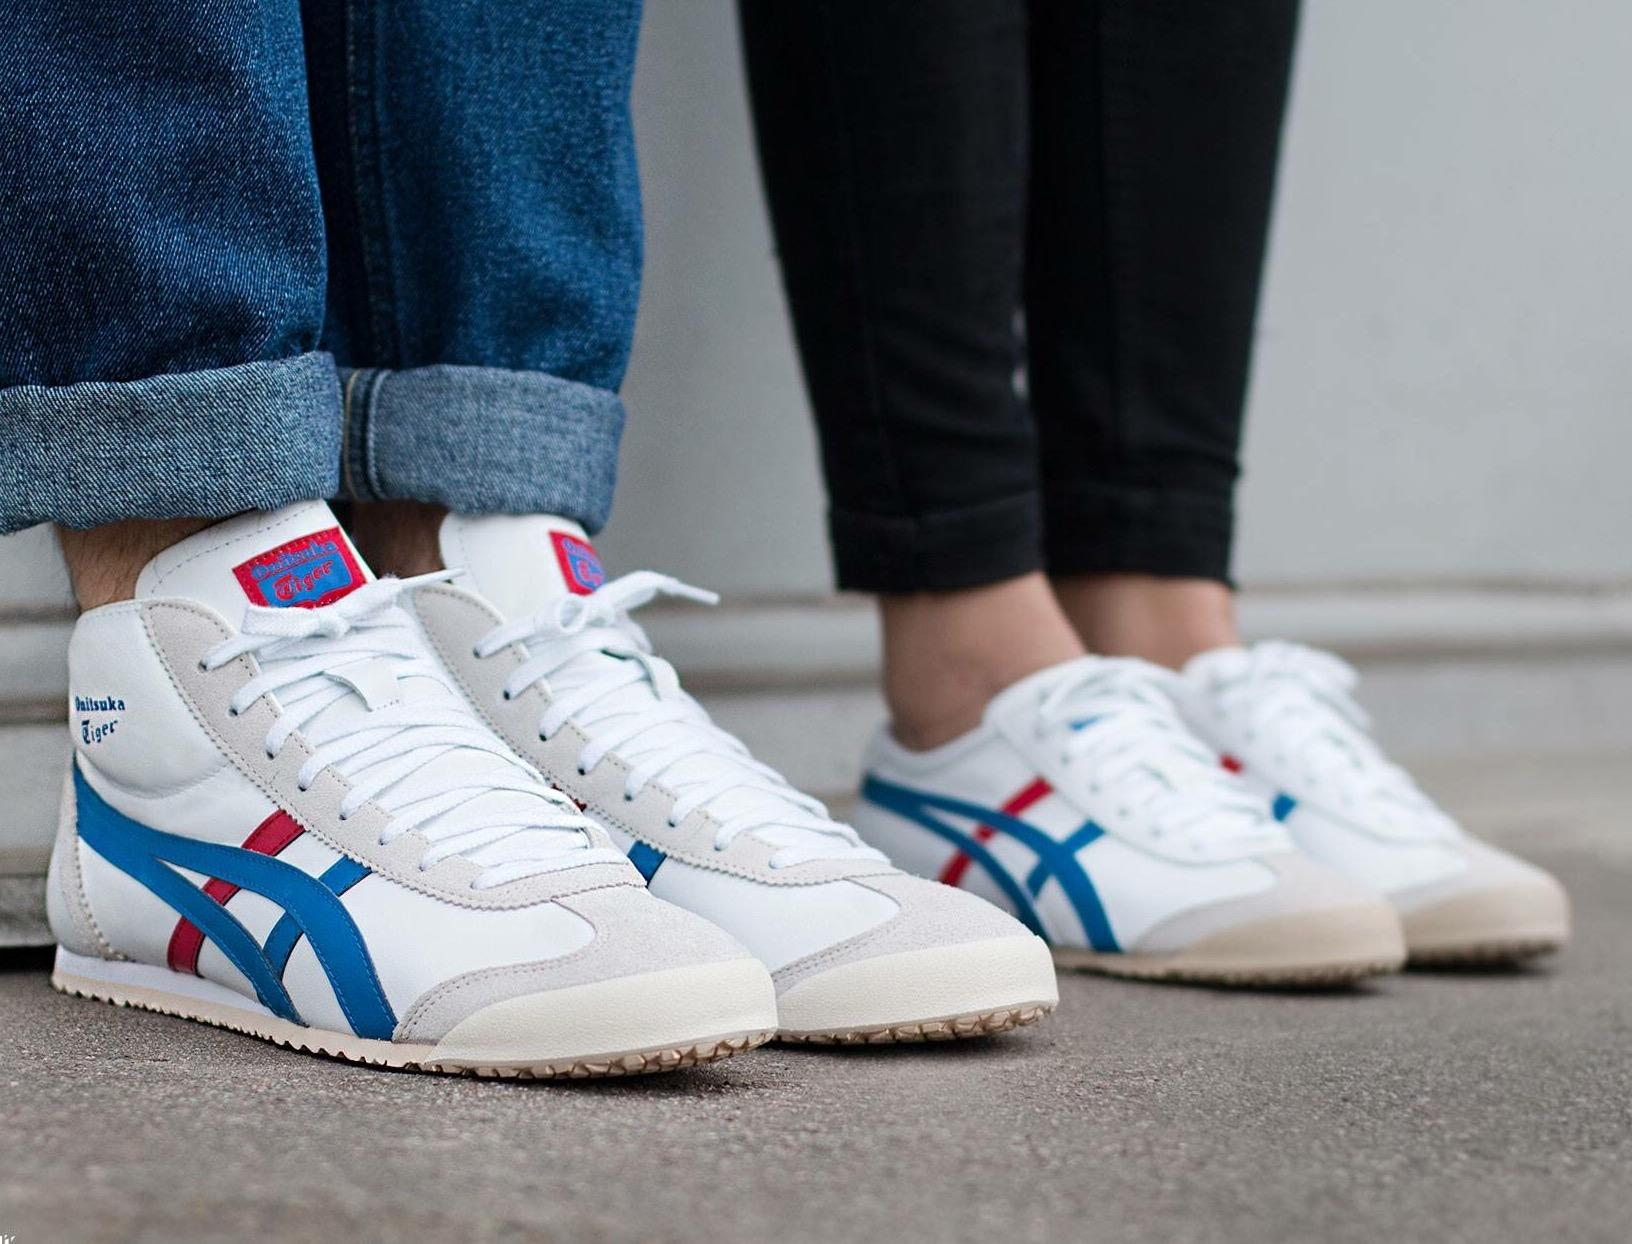 super popular 3ee7b 71be5 Onitsuka Tiger: Onitsuka Tiger targets 12 stores in India by ...